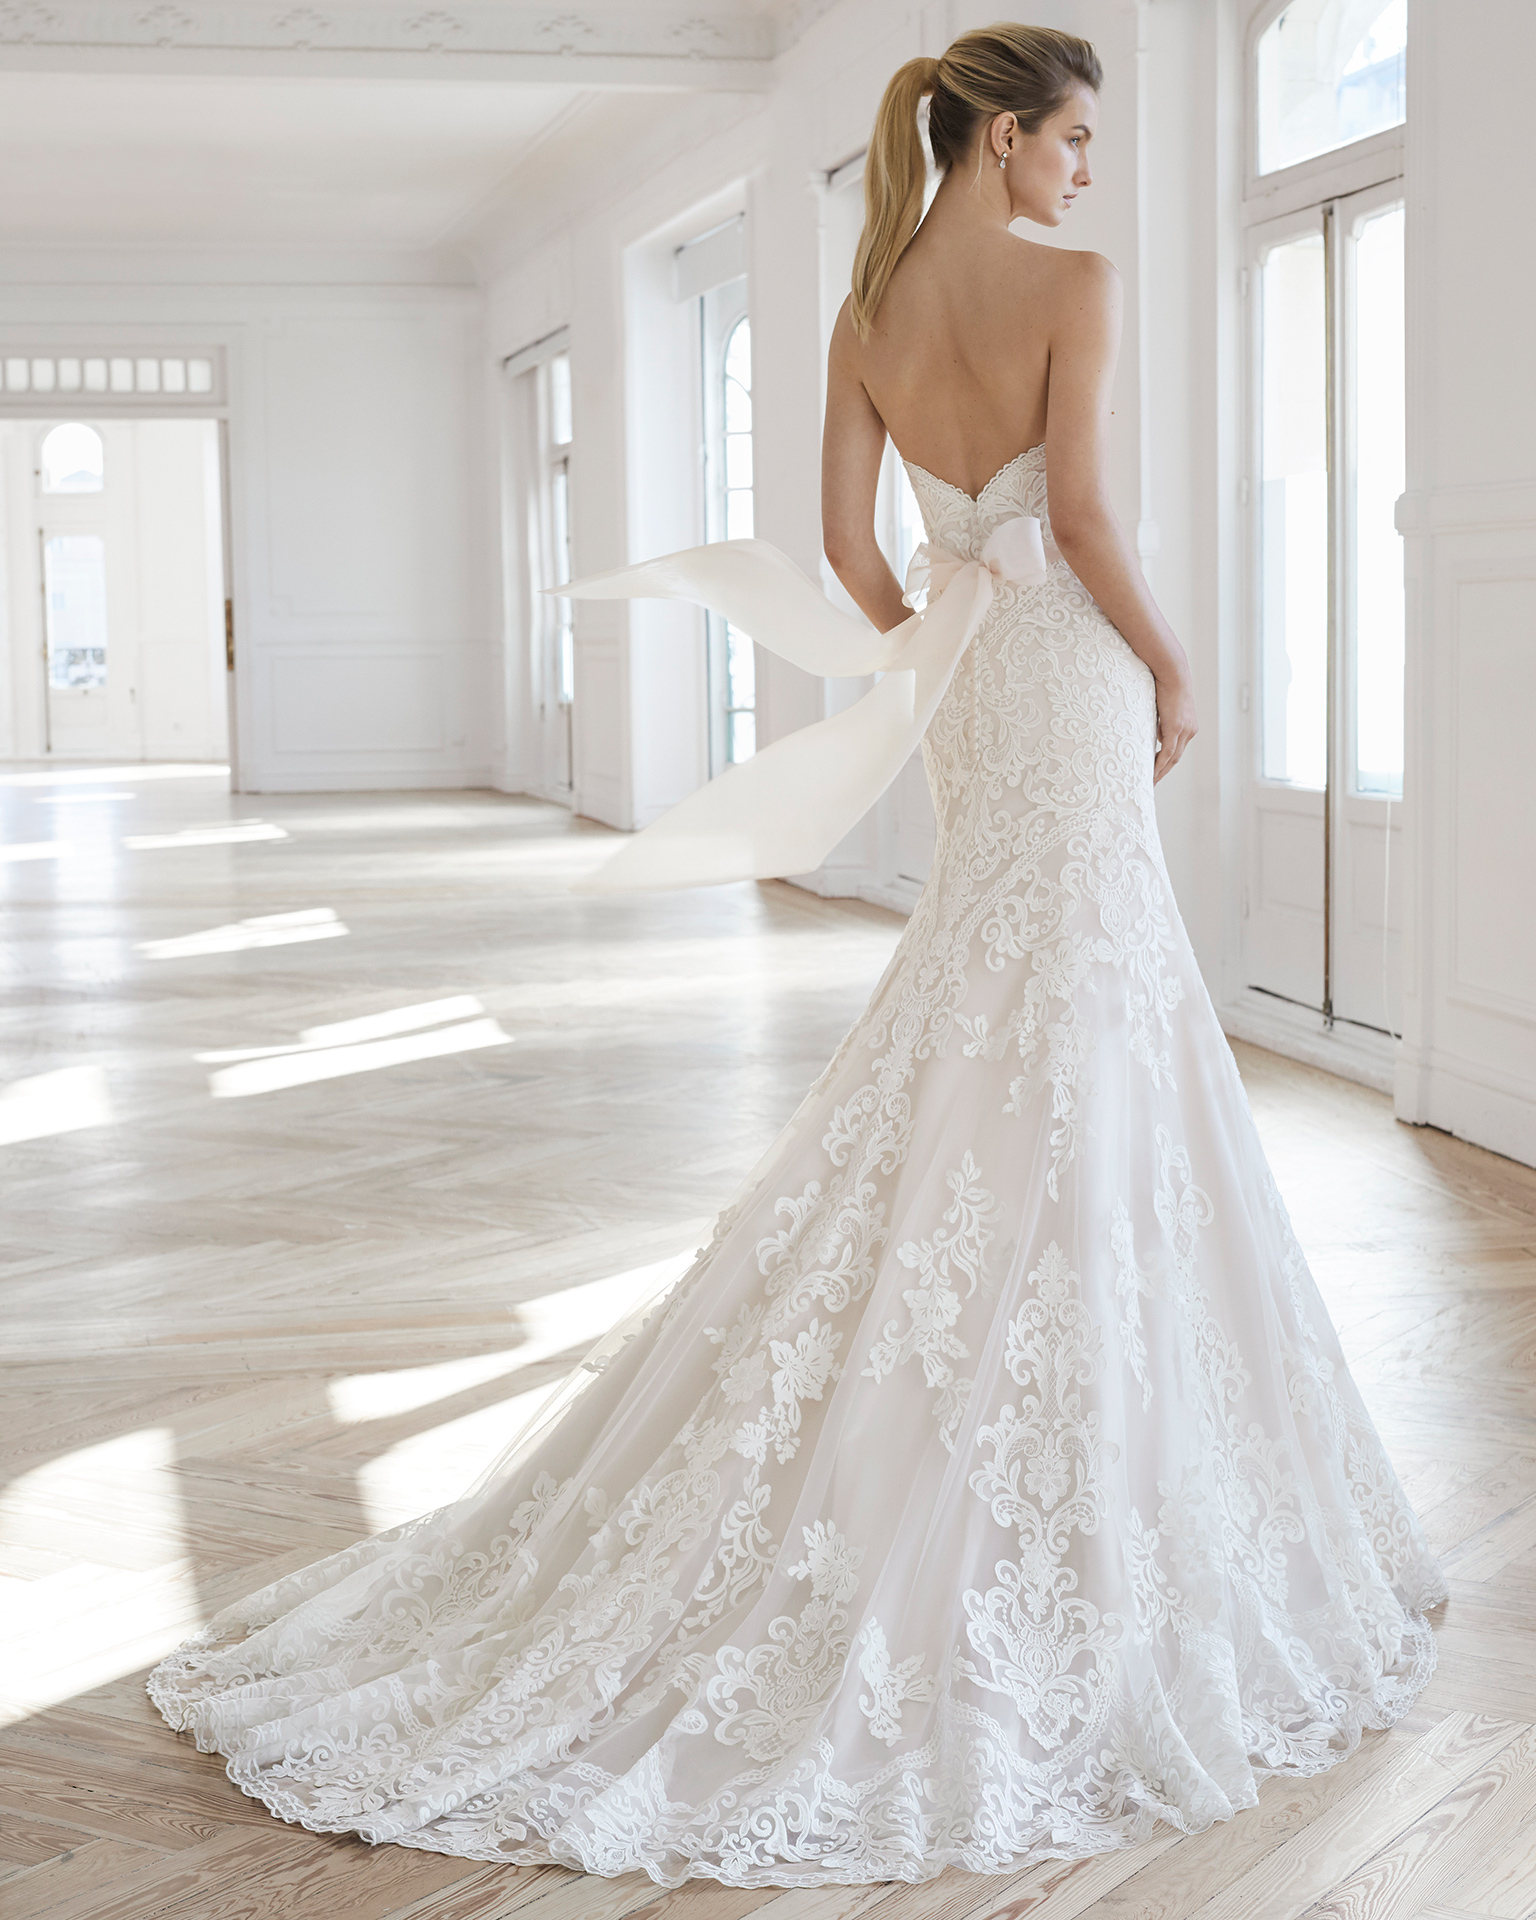 Aire Barcelona 2019 Wedding Dress Collection. Desktop Image